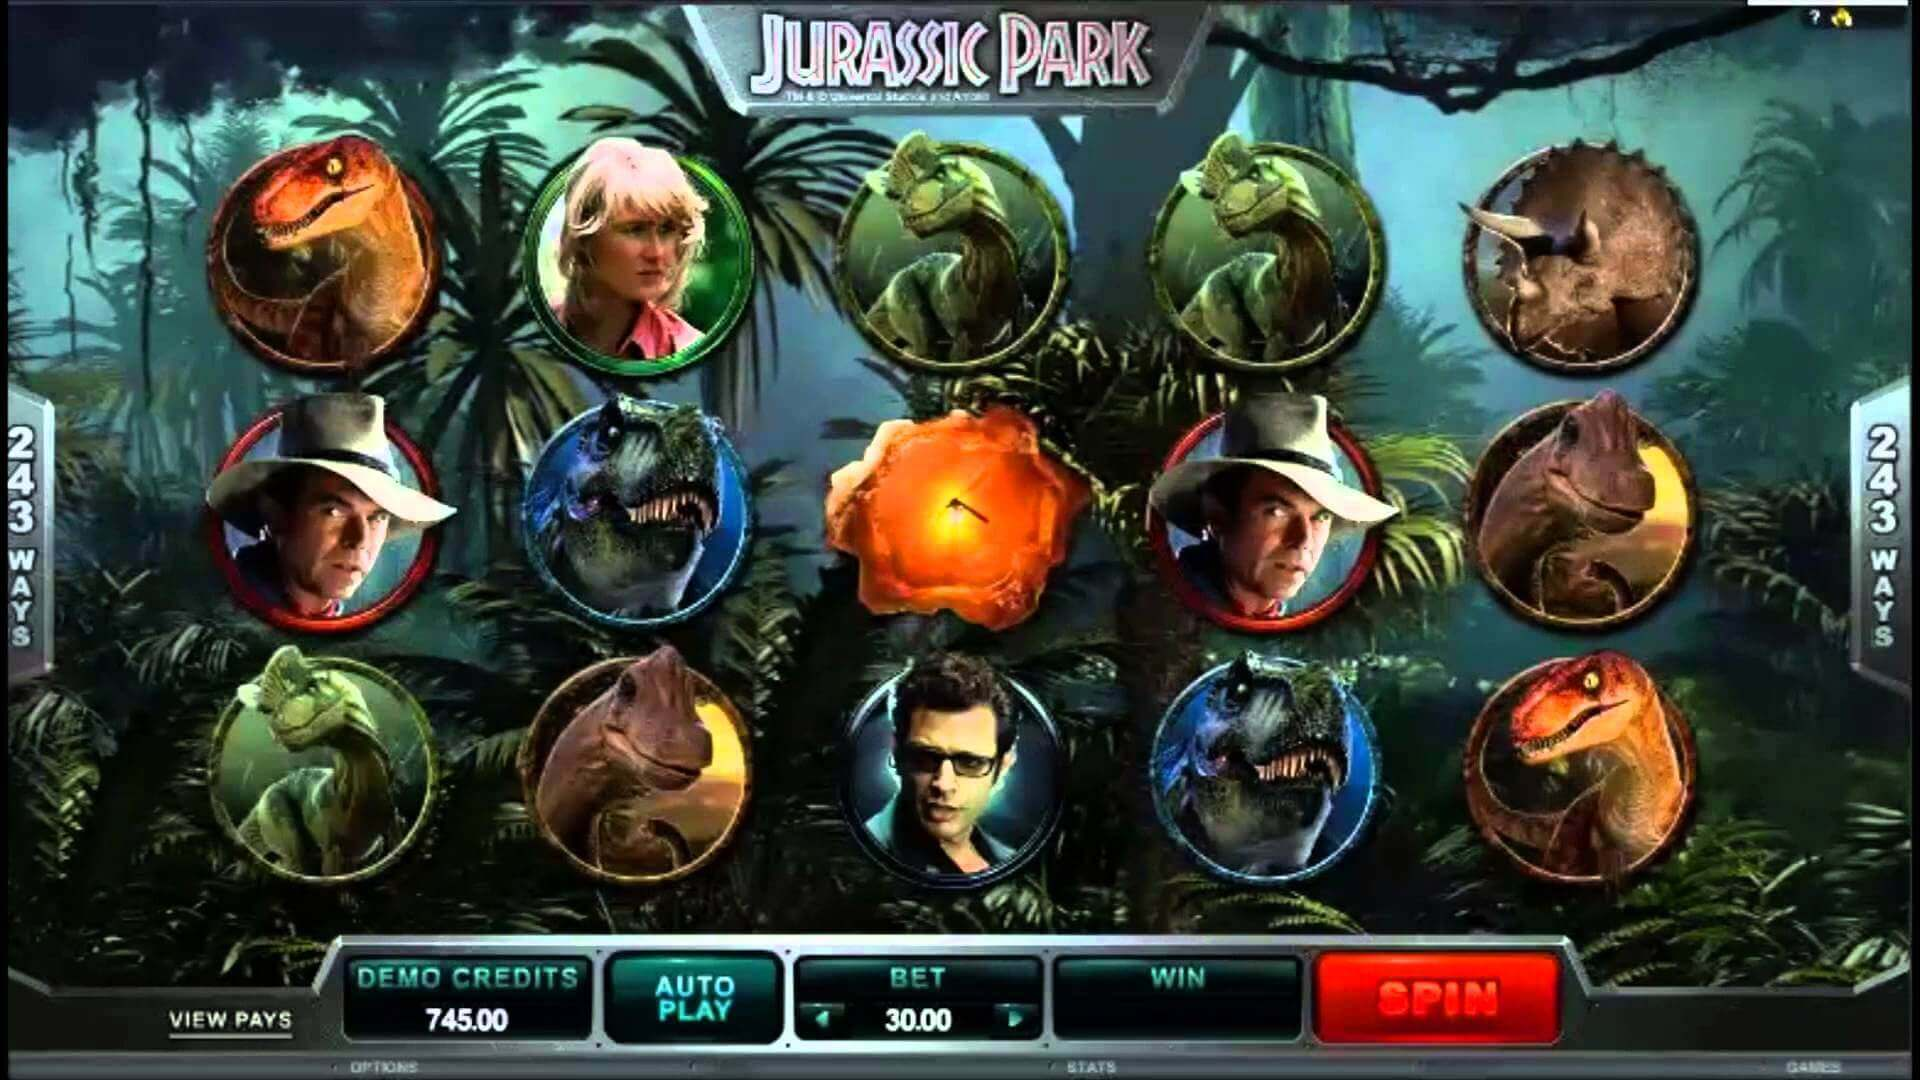 Jurassic World Games - Free online Jurassic World Games